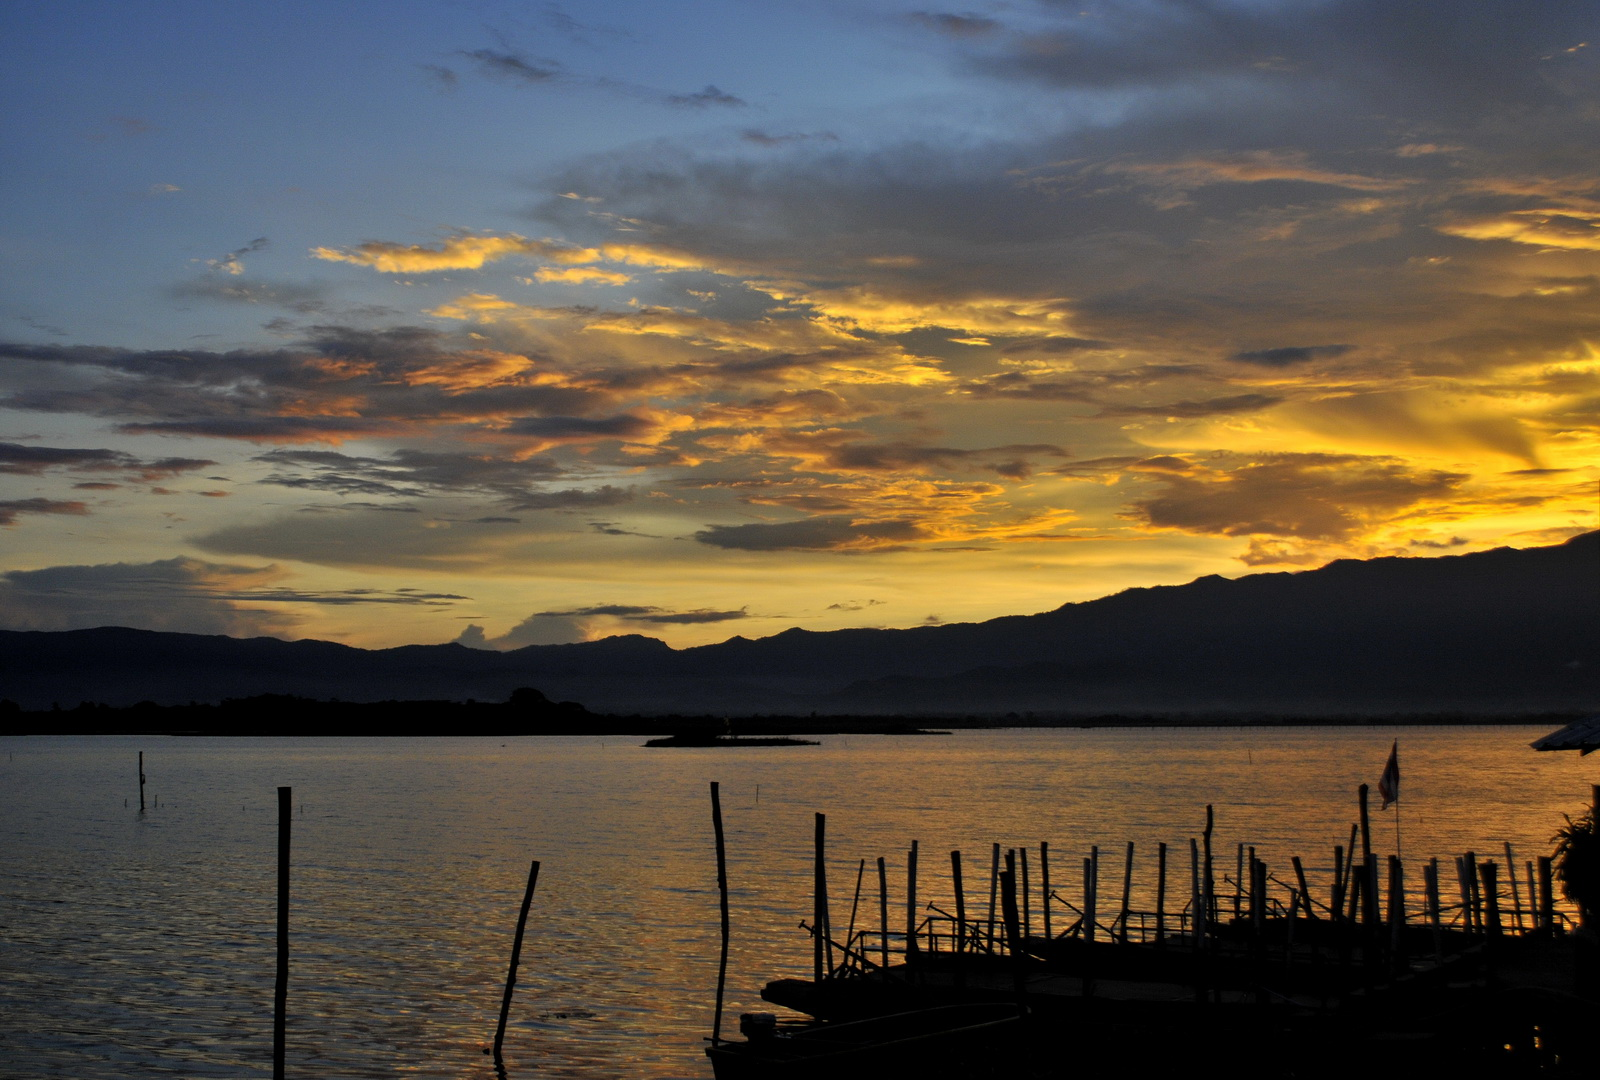 Sunset over Kwan Phayao